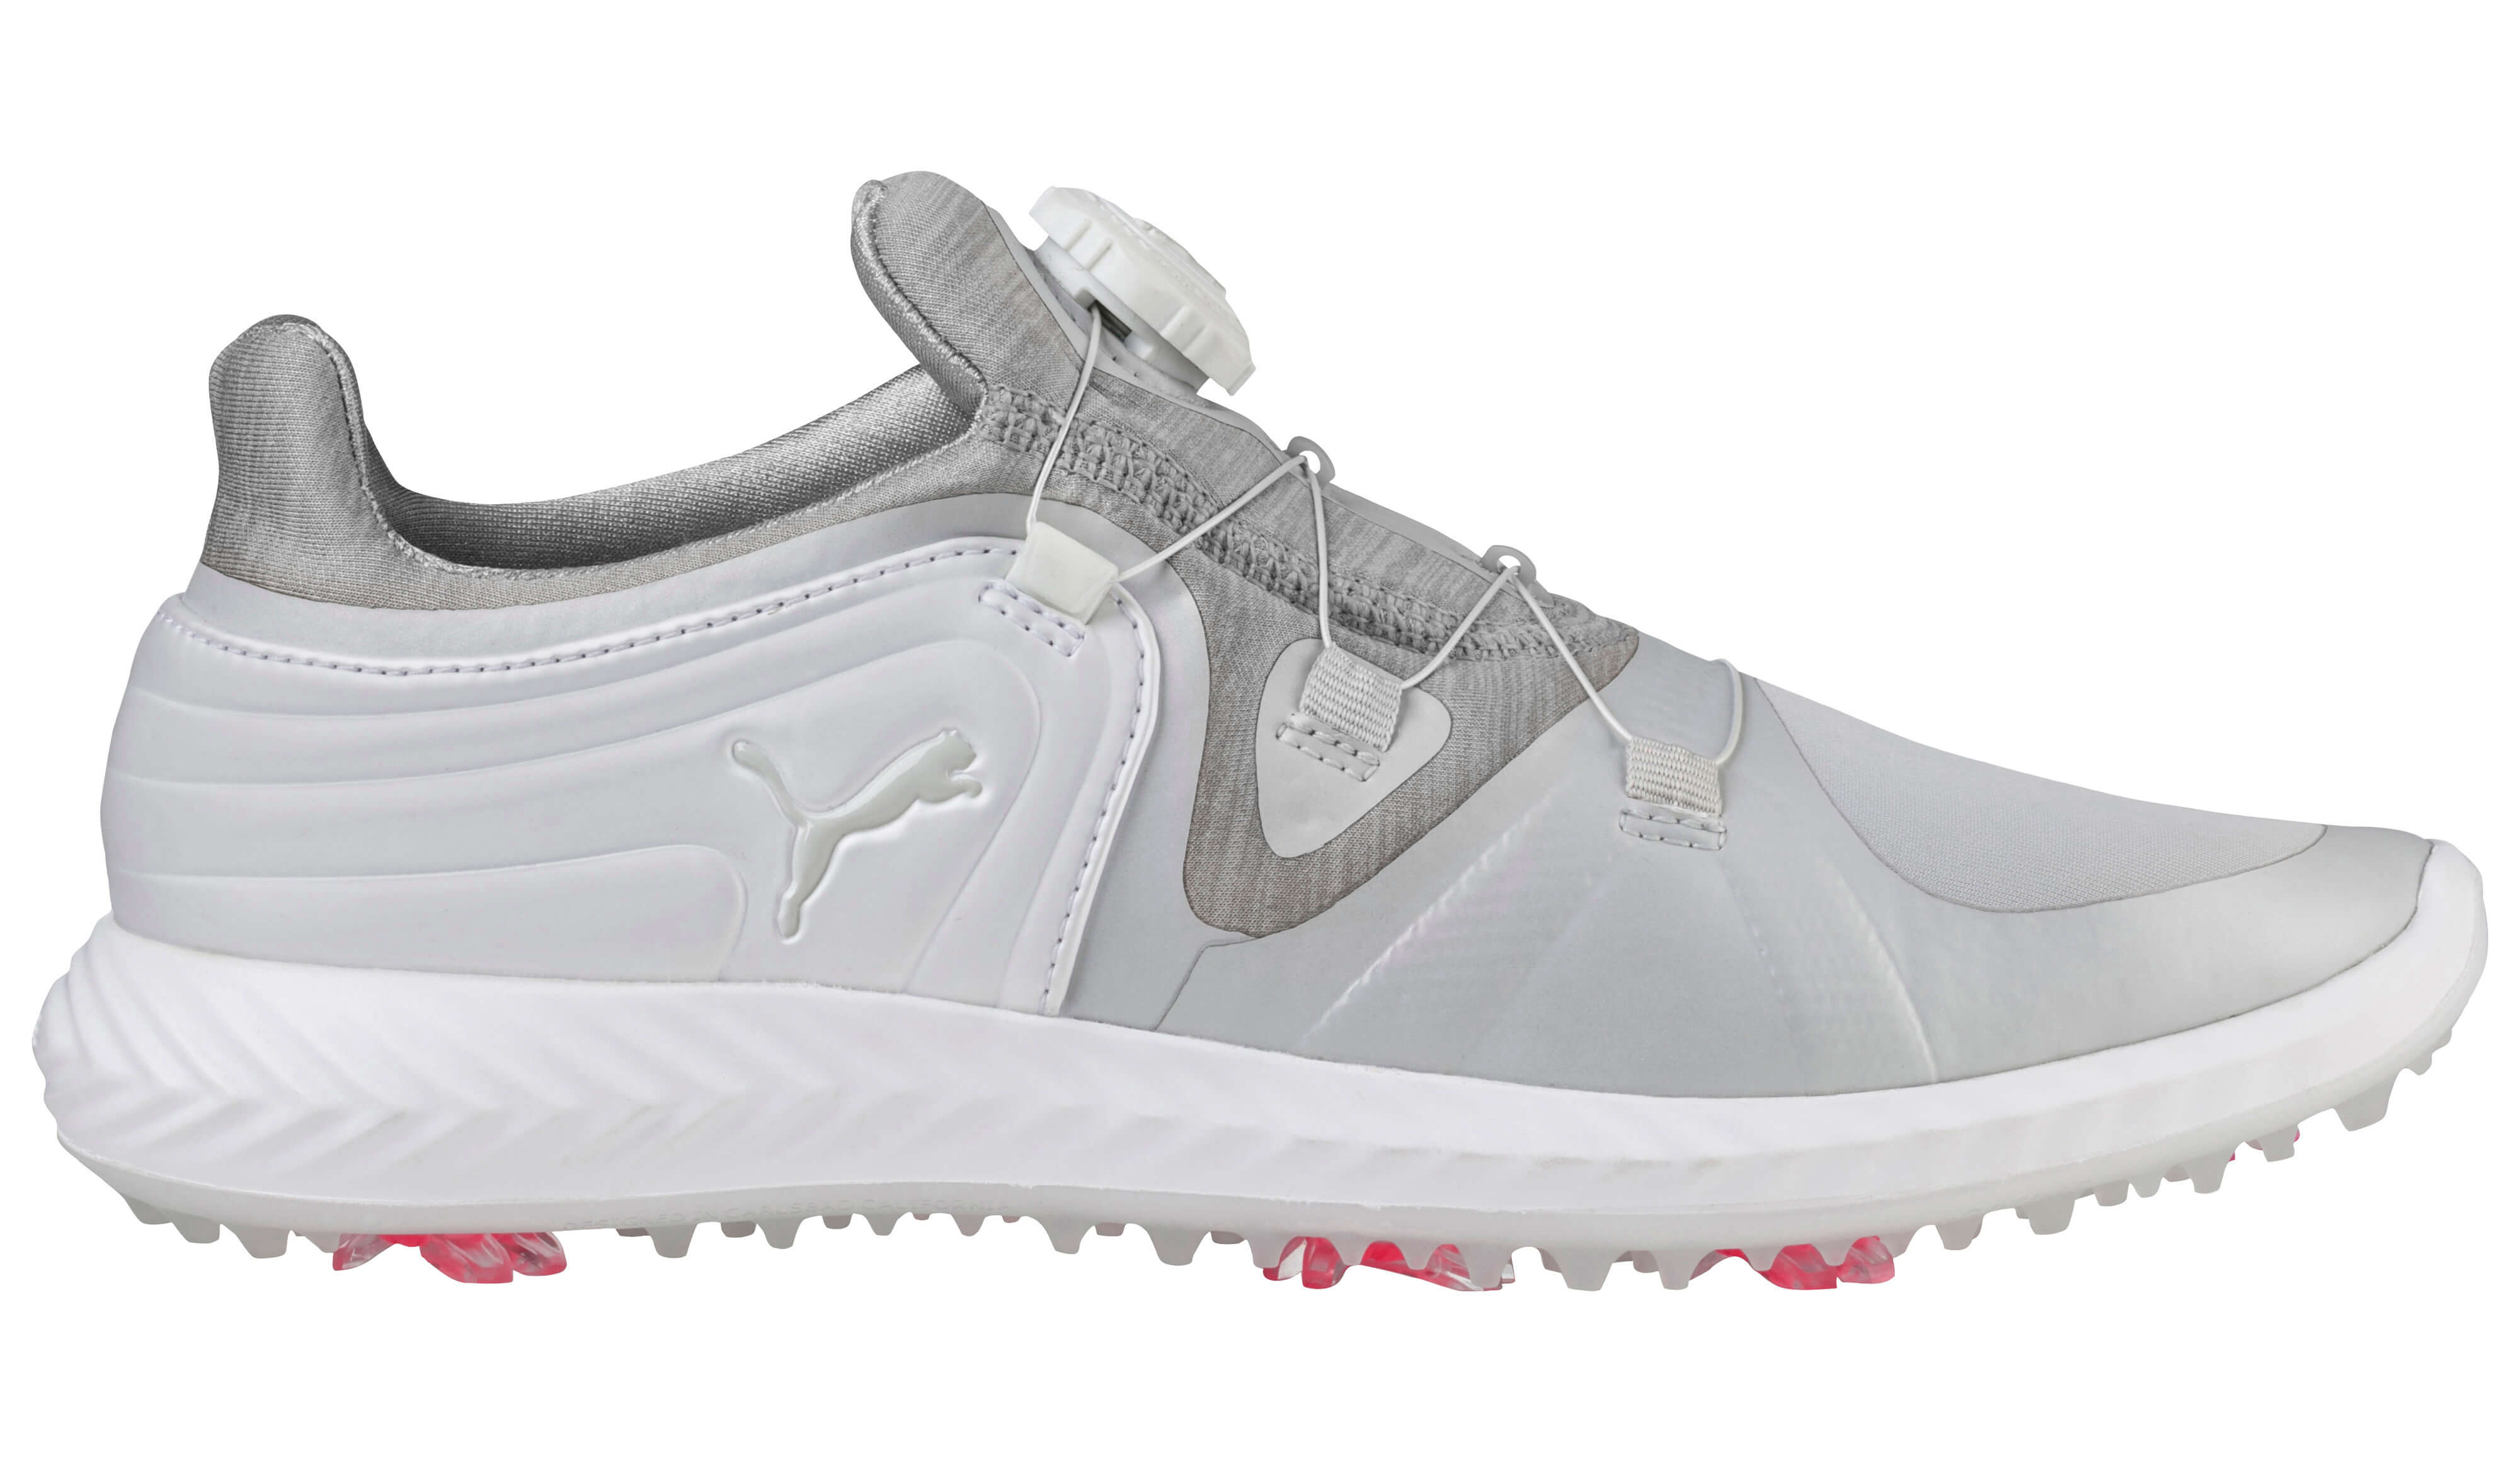 4fda9d6b436 Details about Puma Women s Ignite Blaze Sport Disc Ladies Golf Shoes  190585-01 Gray Violet New